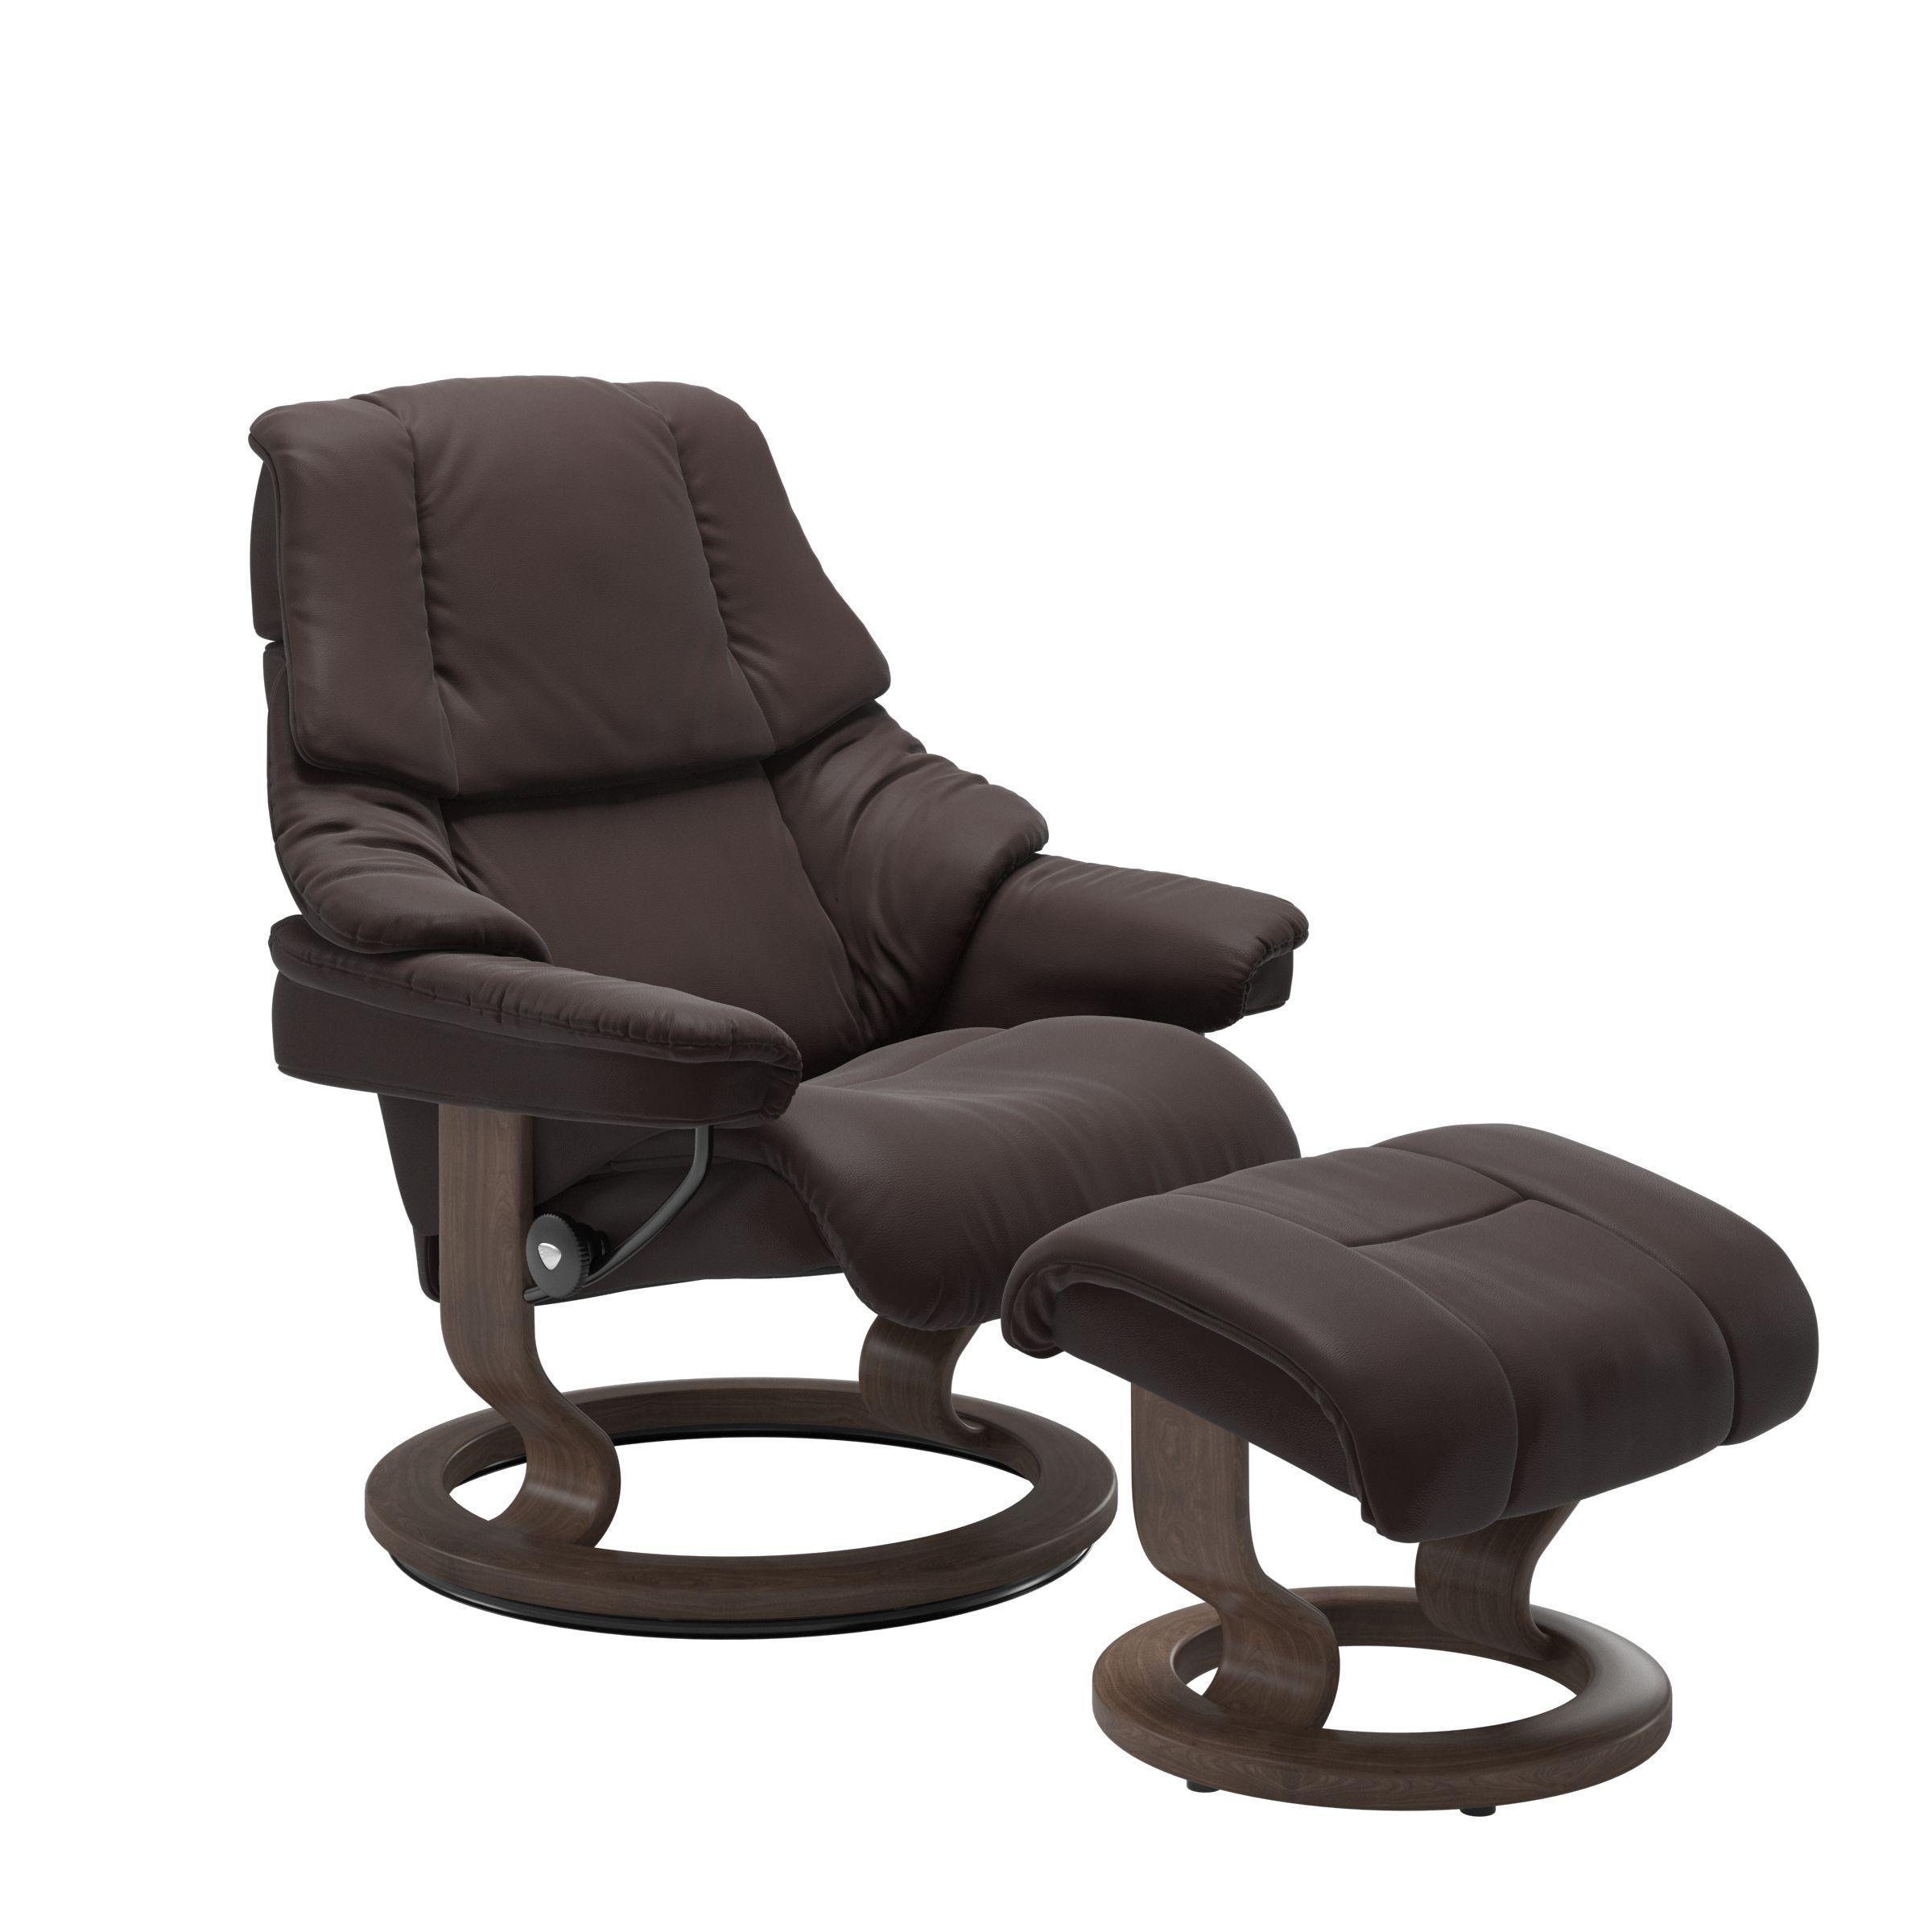 Stressless By EkornesStressless Reno Large Classic Base Chair And Ottoman